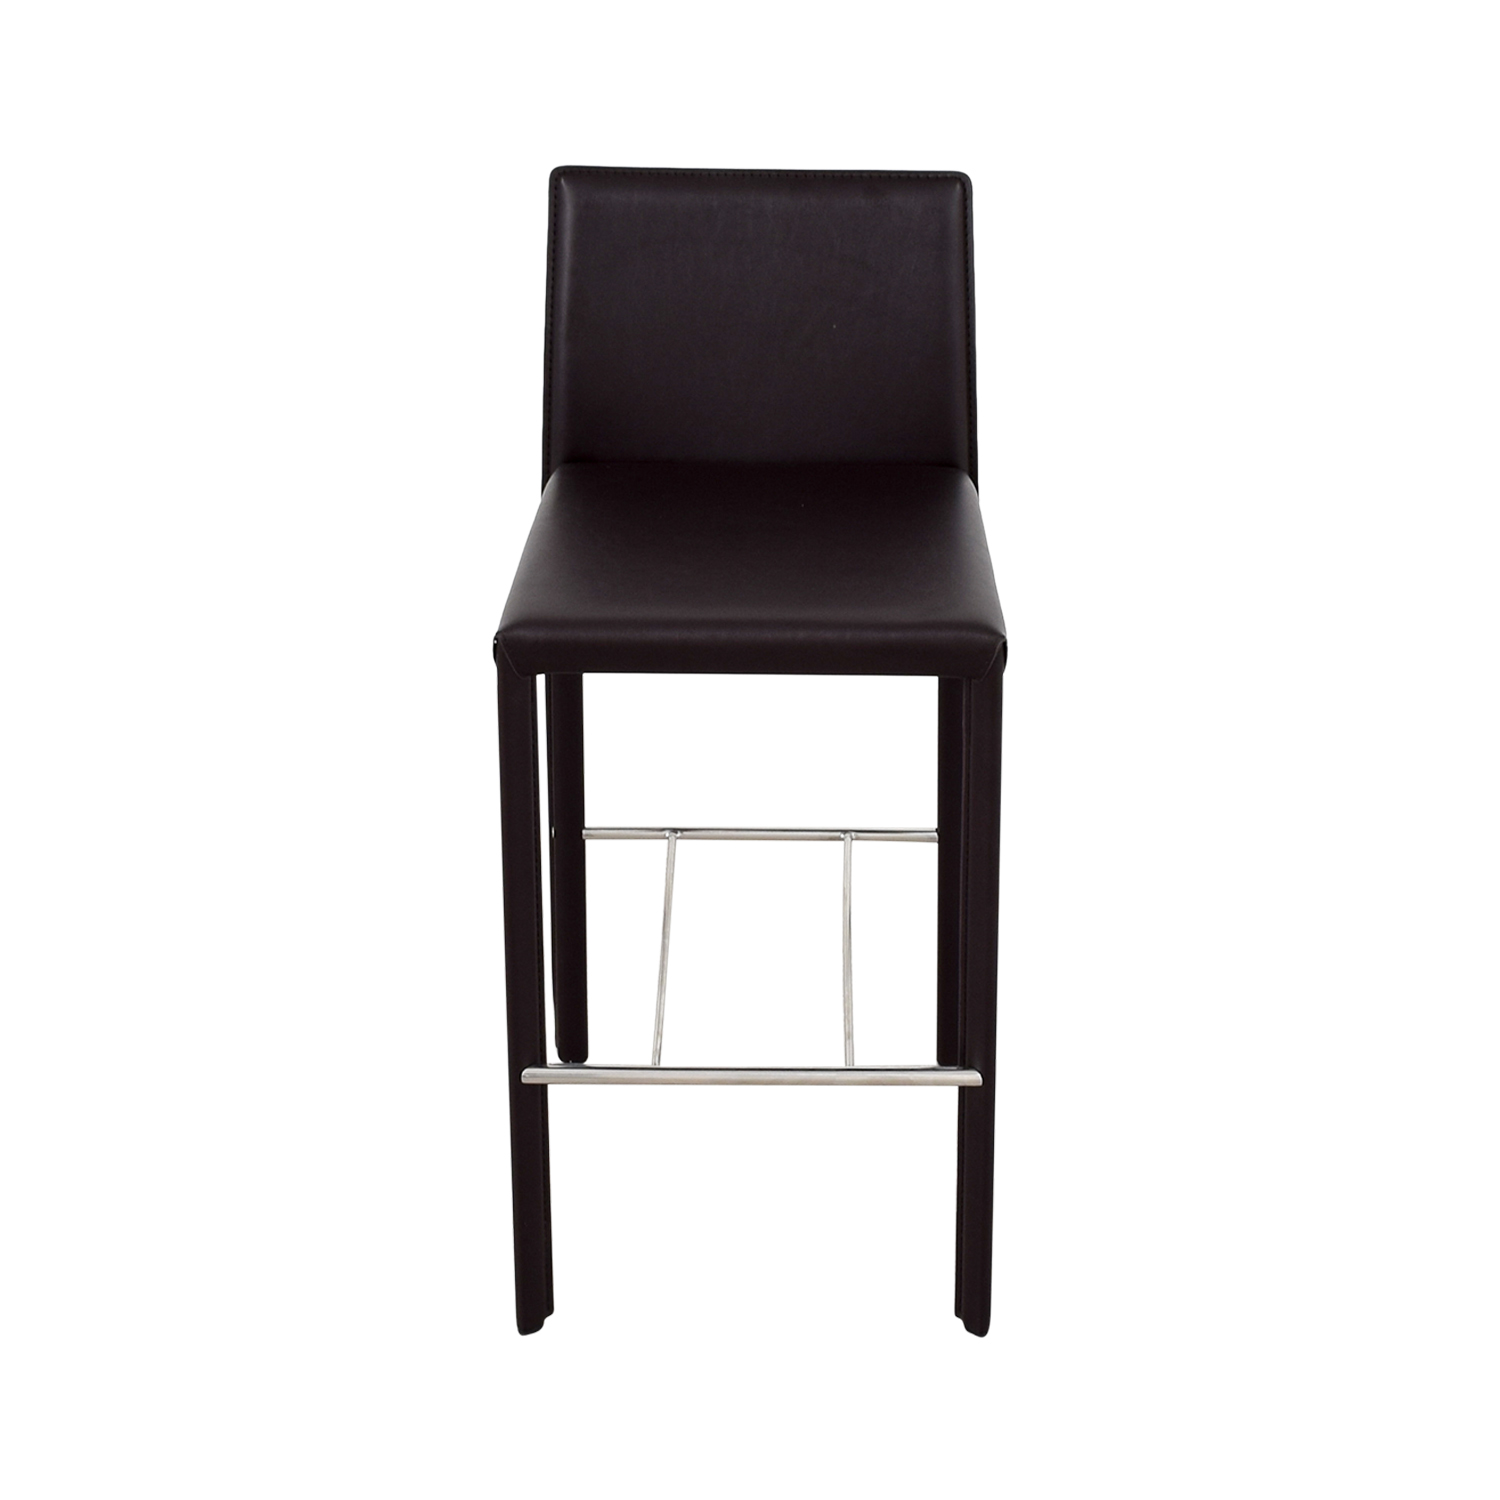 shop Coaster Coaster Modern Brown Leatherette Bar Chair online